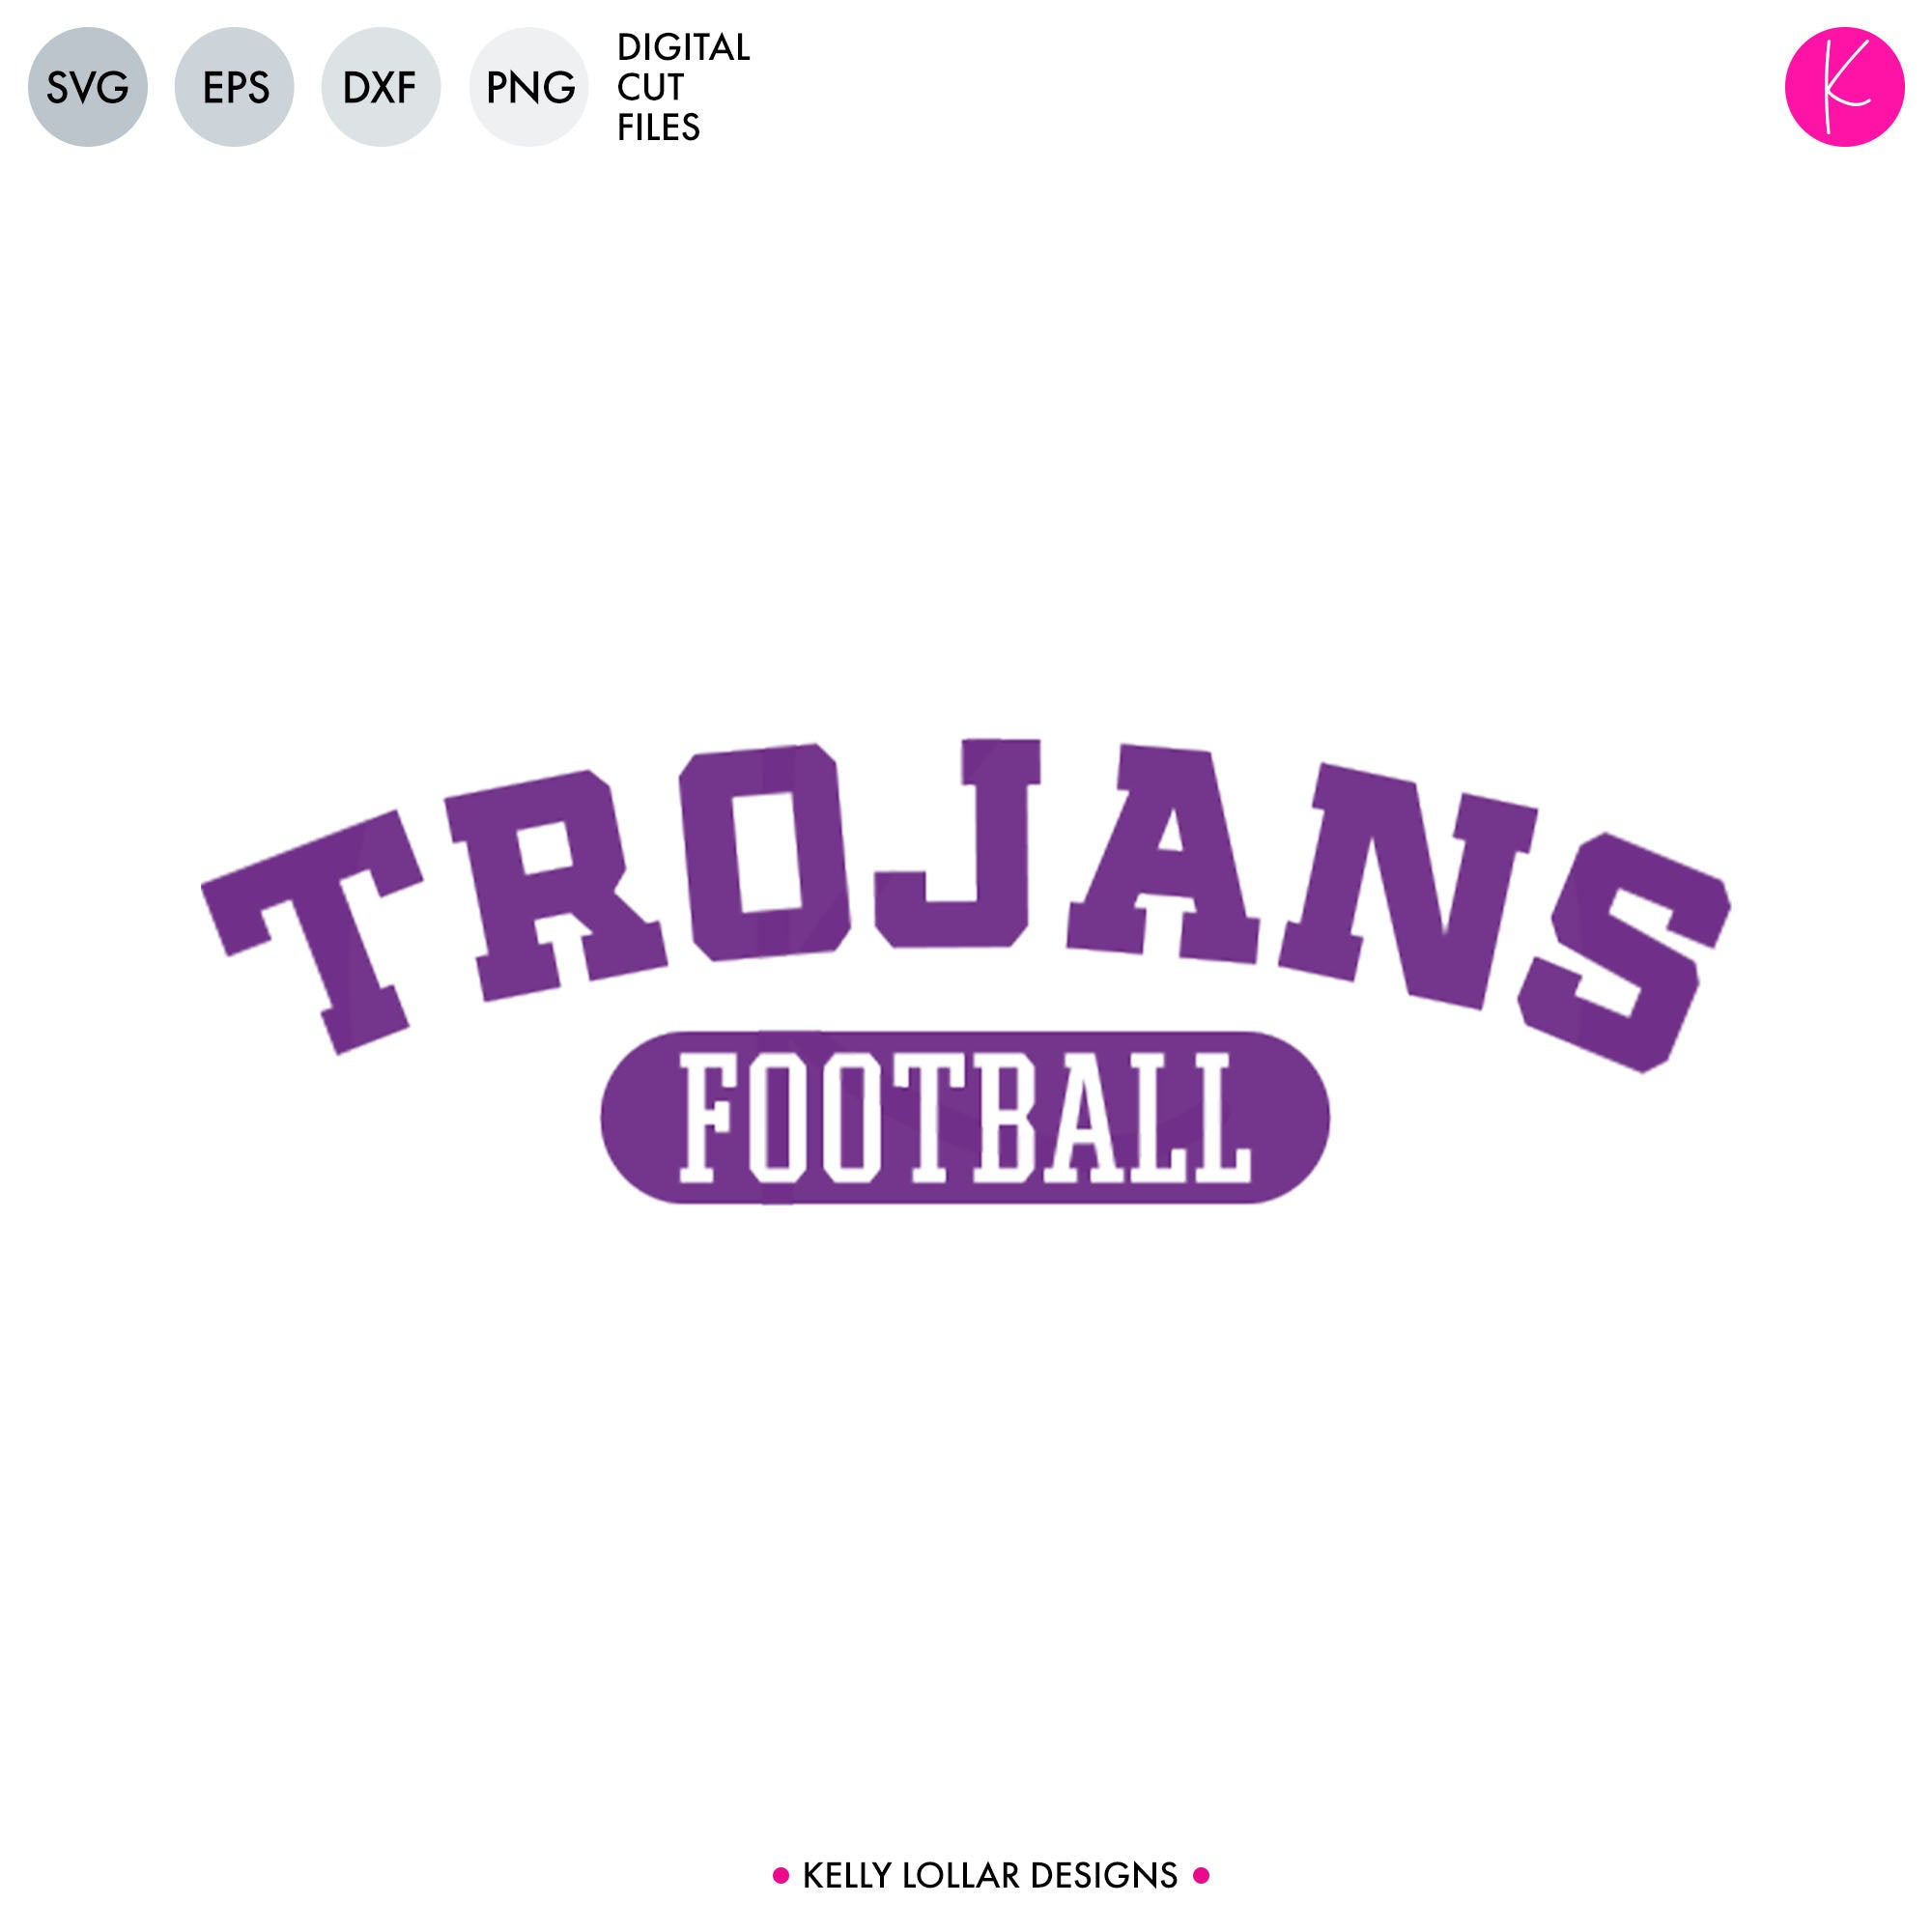 Trojans Football Bundle | SVG DXF EPS PNG Cut Files This Trojan Football Bundle was created with school crafters in mind. Create an assortment of spirit shirts with choices ranging from family designs to monograms to classic. 24 files for